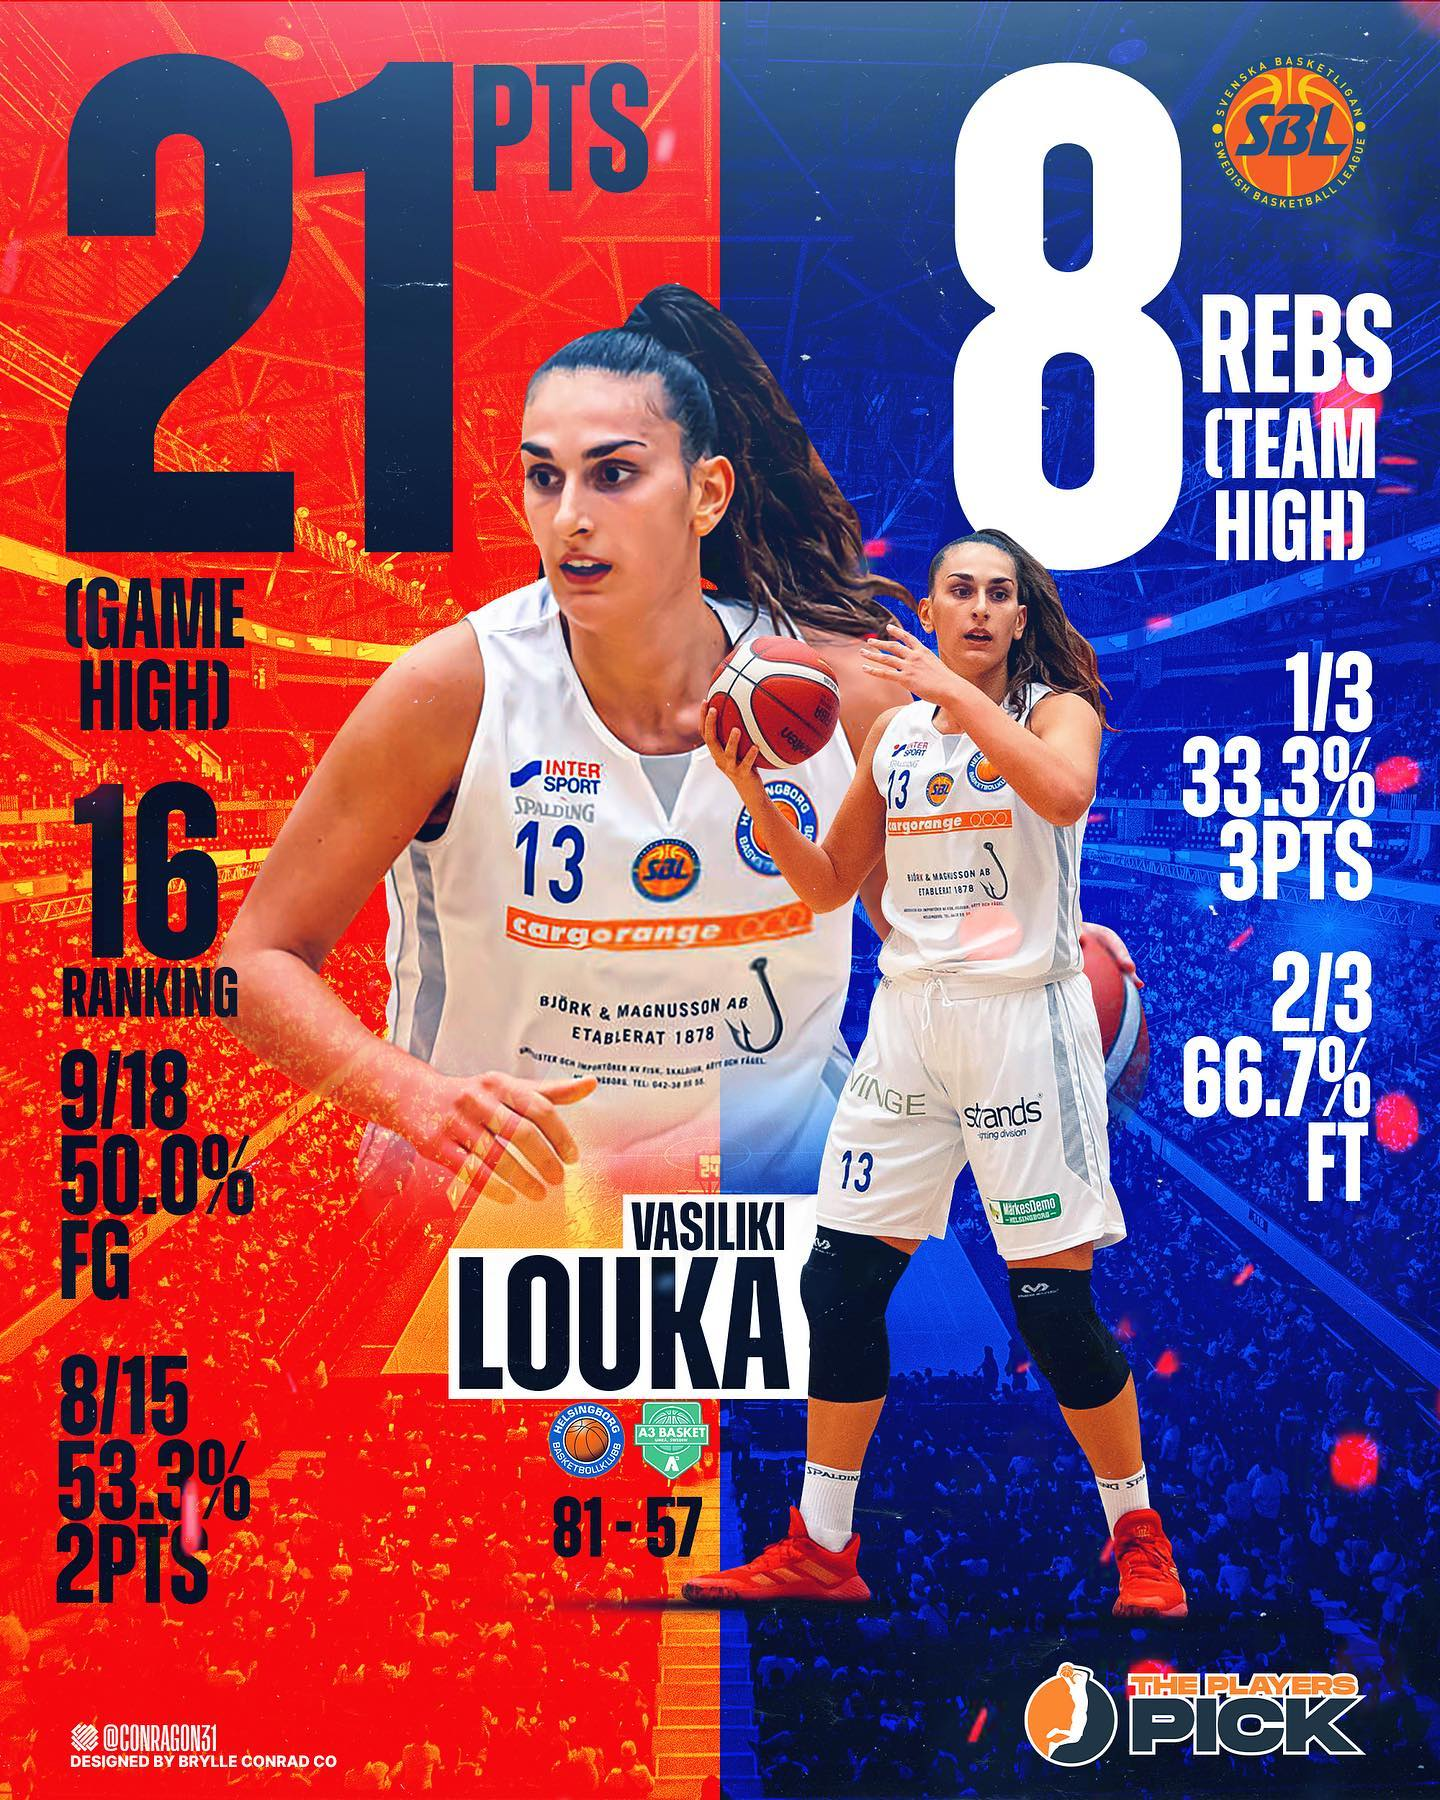 21 points & 8 rebounds for Vasiliki Louka vs Champions of Sweden A3 UMEA!